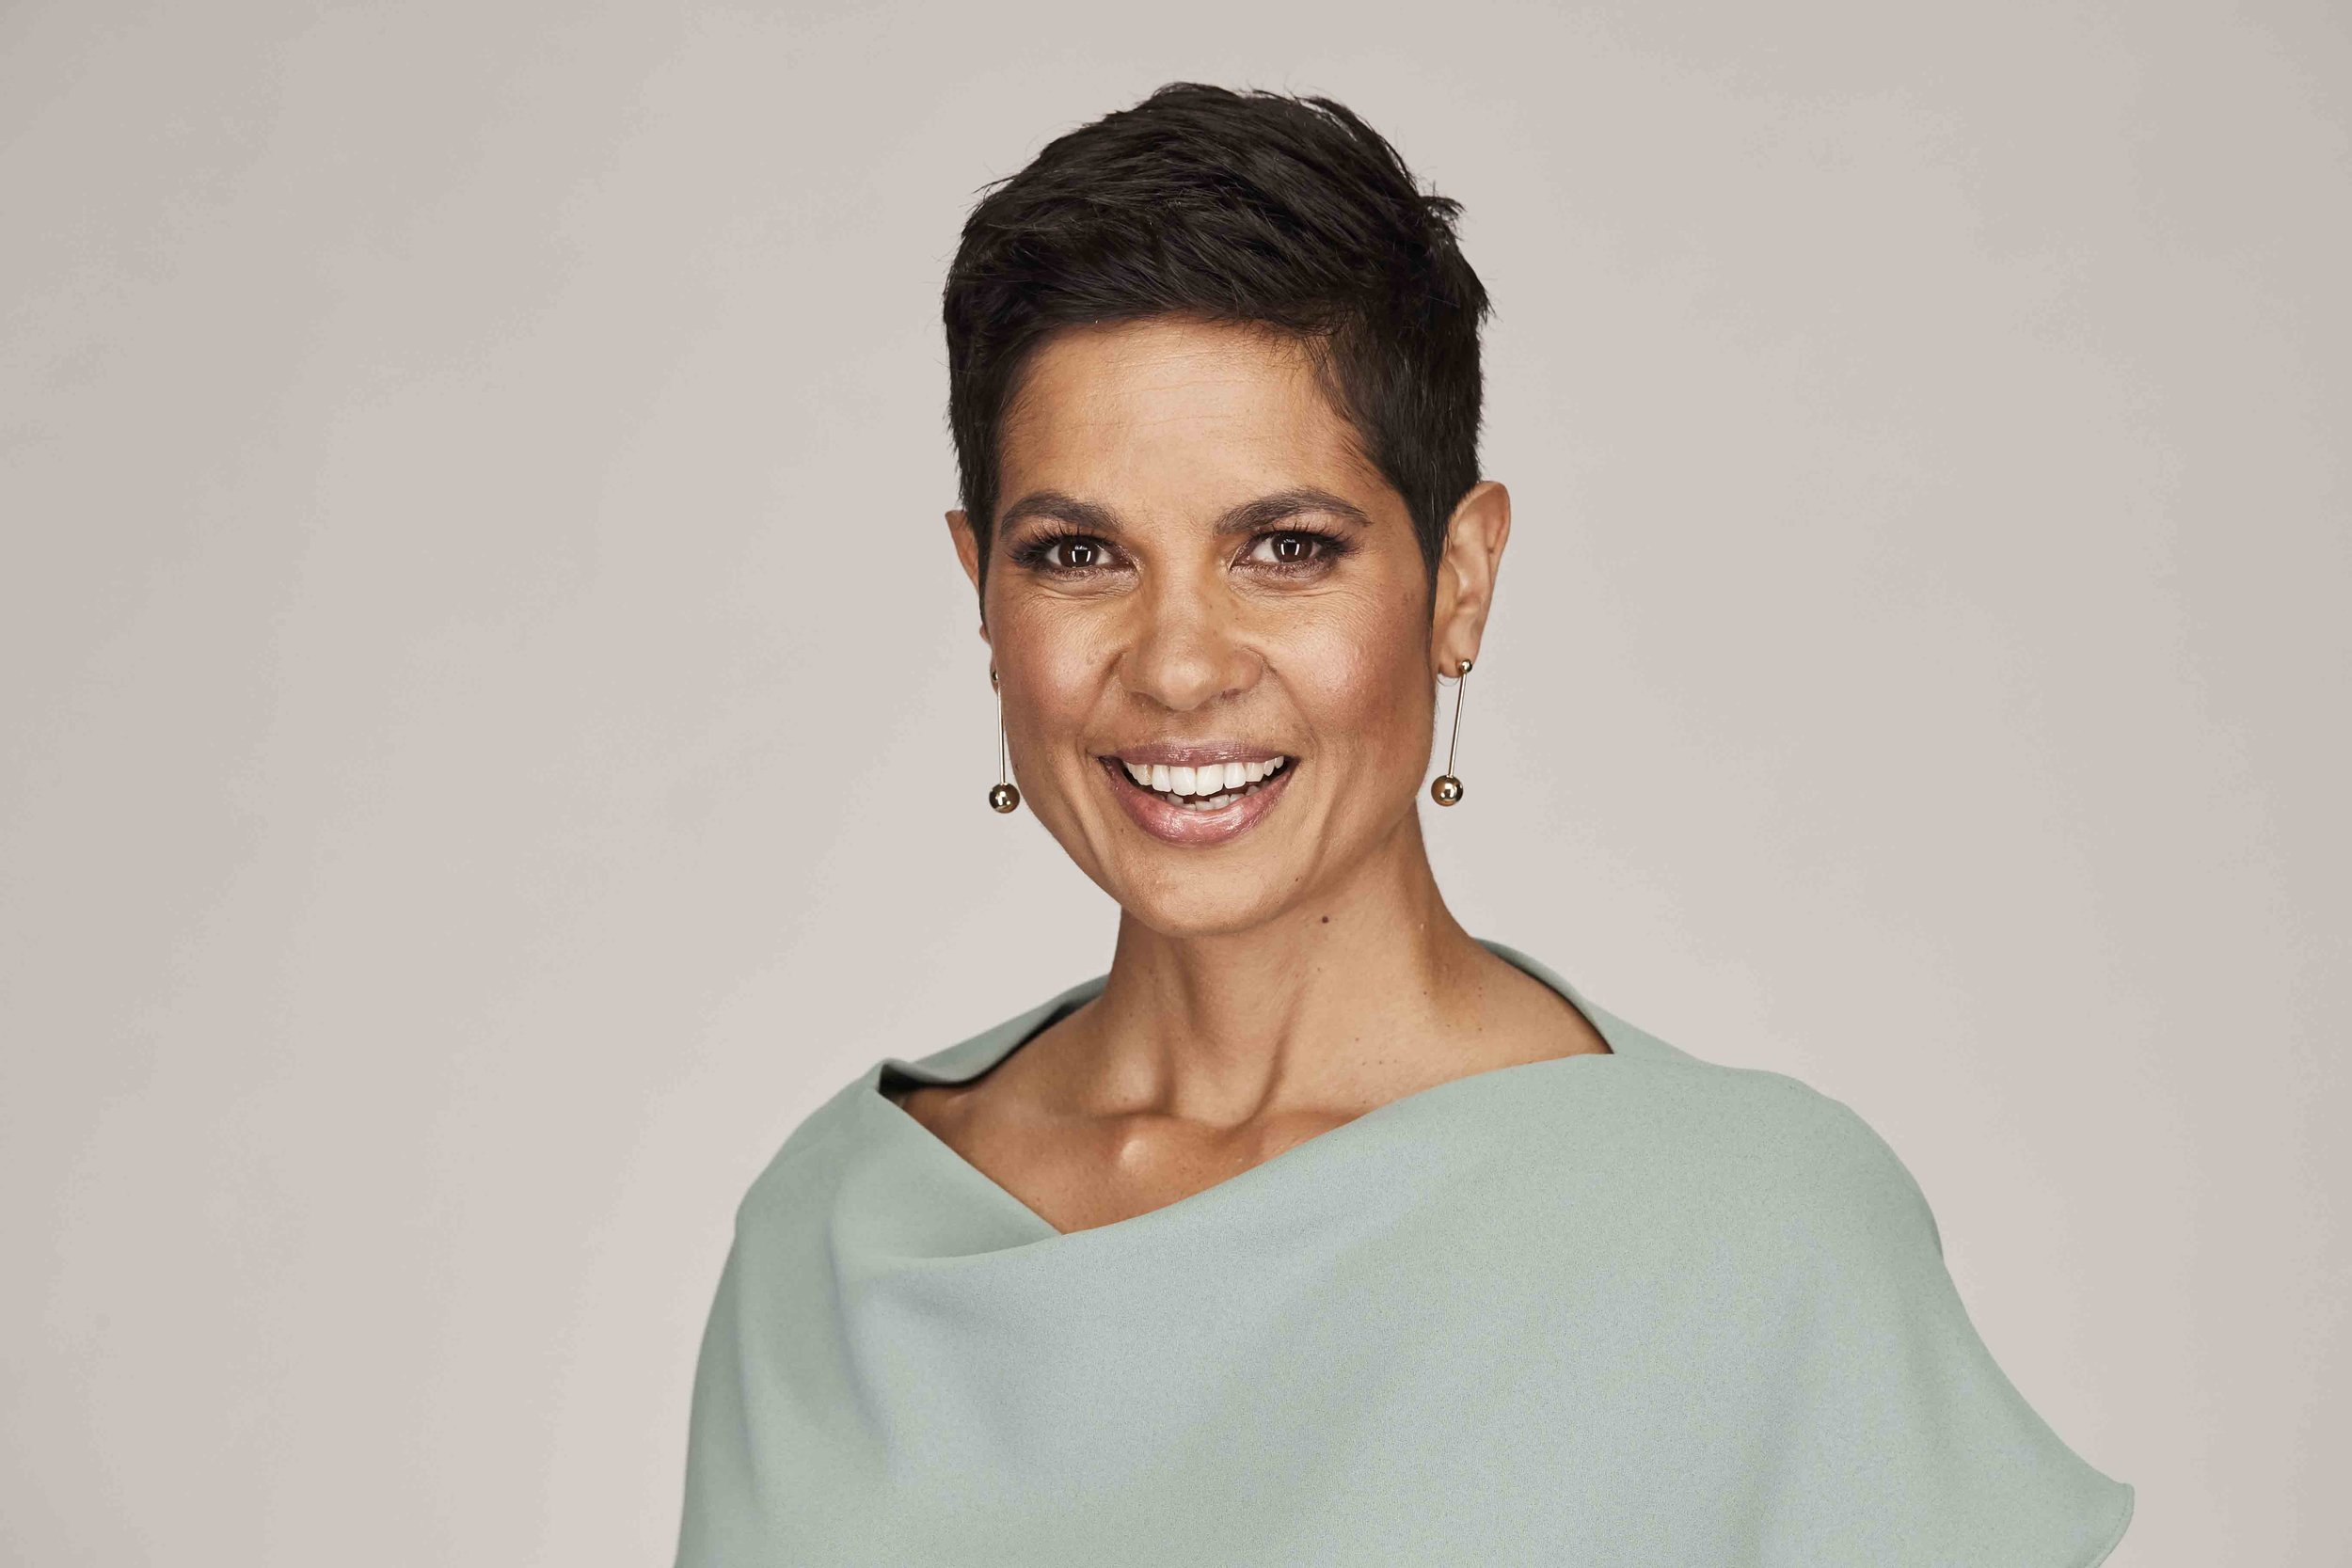 - Presenter of Ten Eyewitness News Perth for ten years, Narelda's on air role has opened the door to many opportunities including working with charities and world leaders.